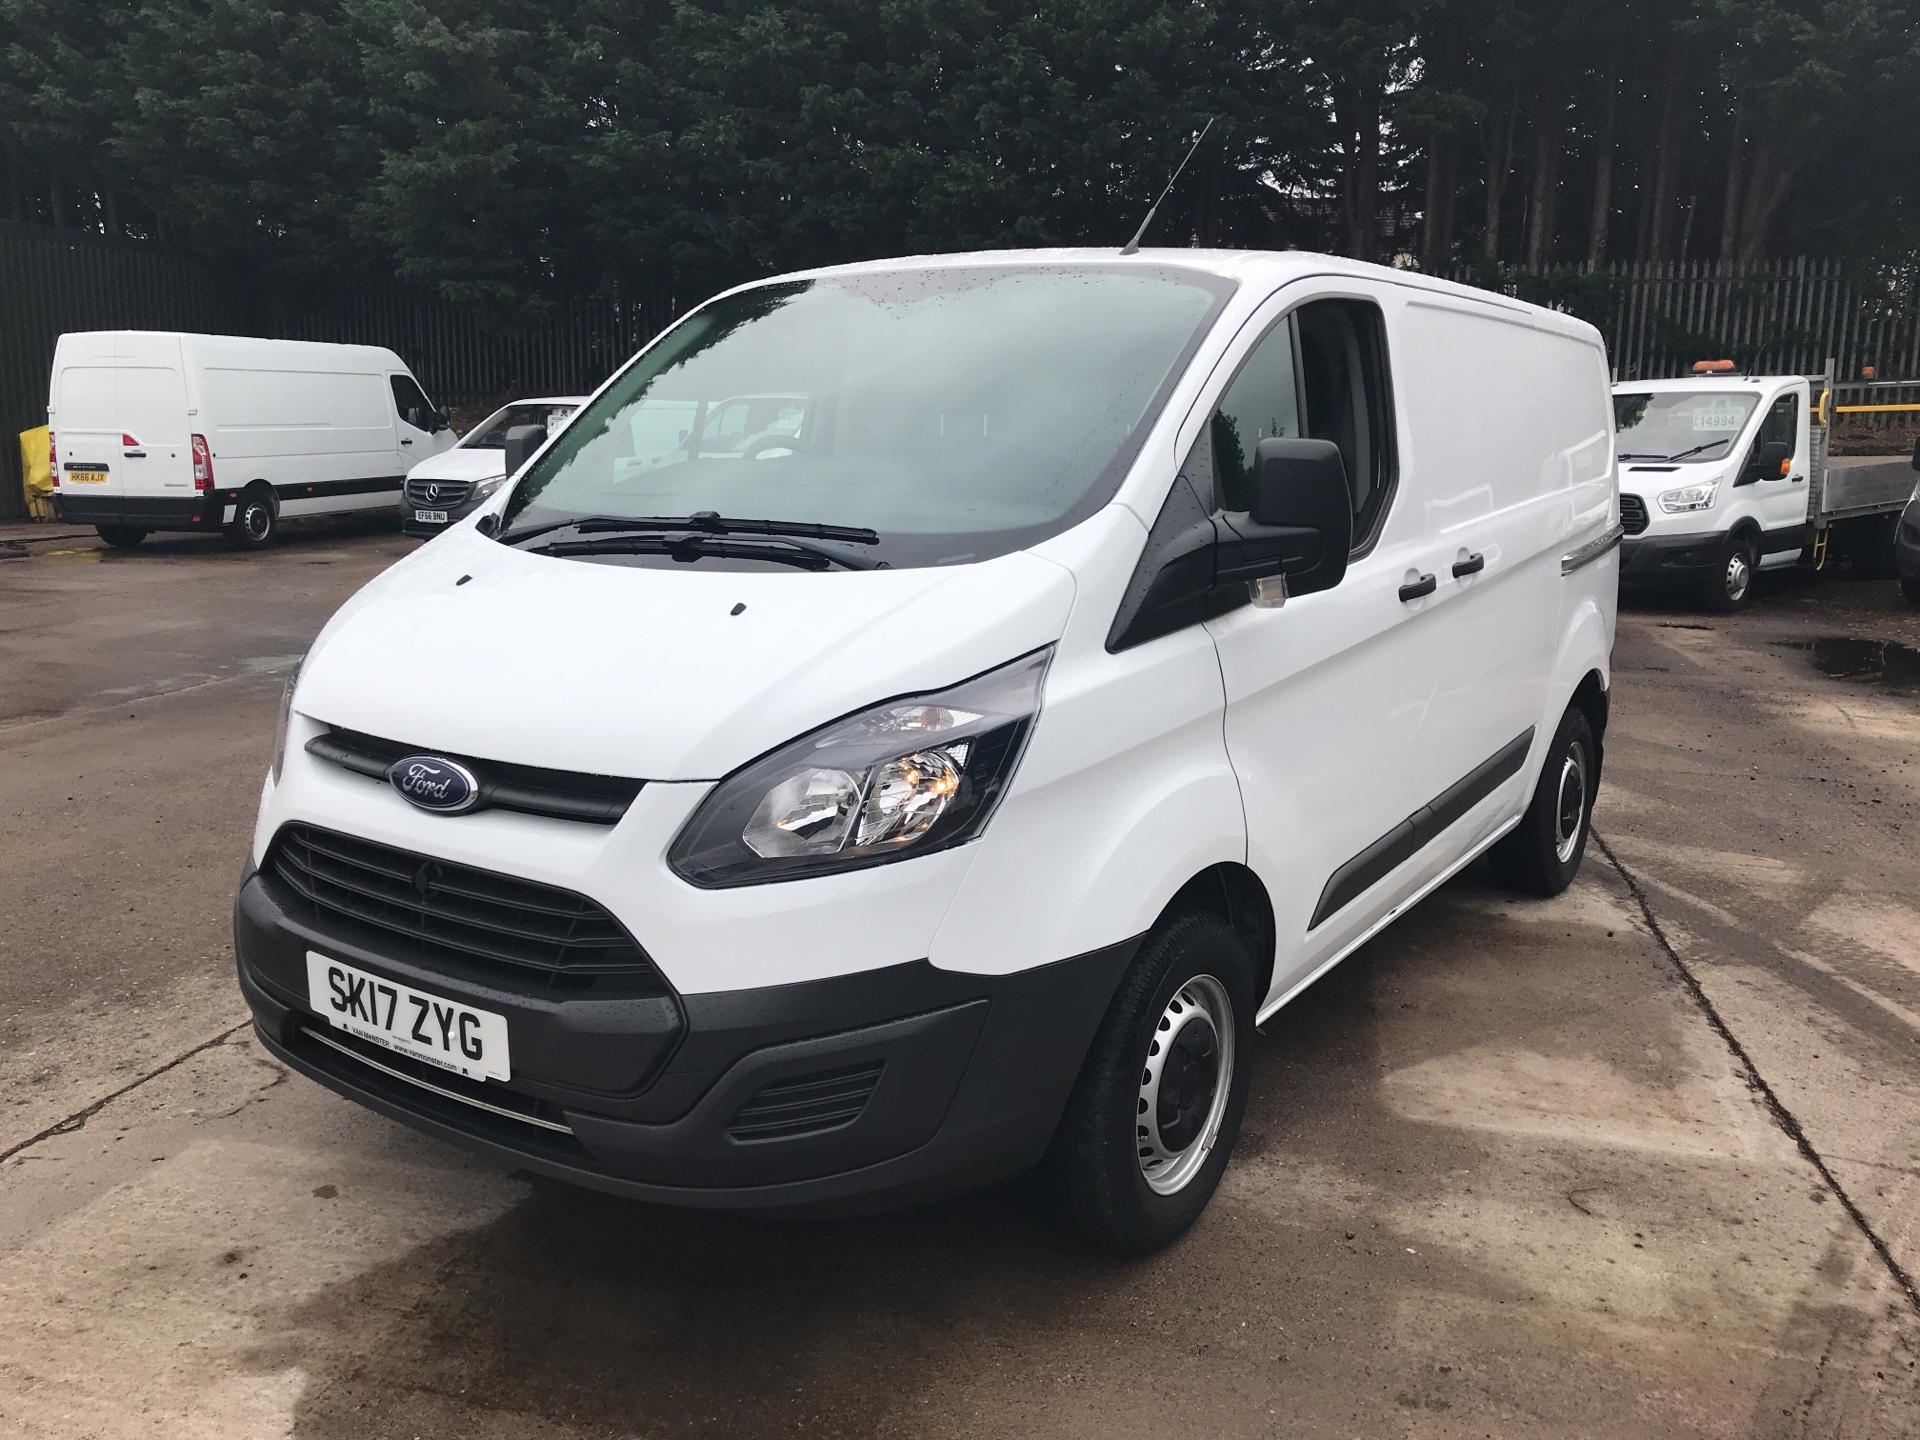 2017 Ford Transit Custom 270 L1 DIESEL FWD 2.2 TDCI 105PS LOW ROOF VAN EURO 5 (SK17ZYG) Thumbnail 7